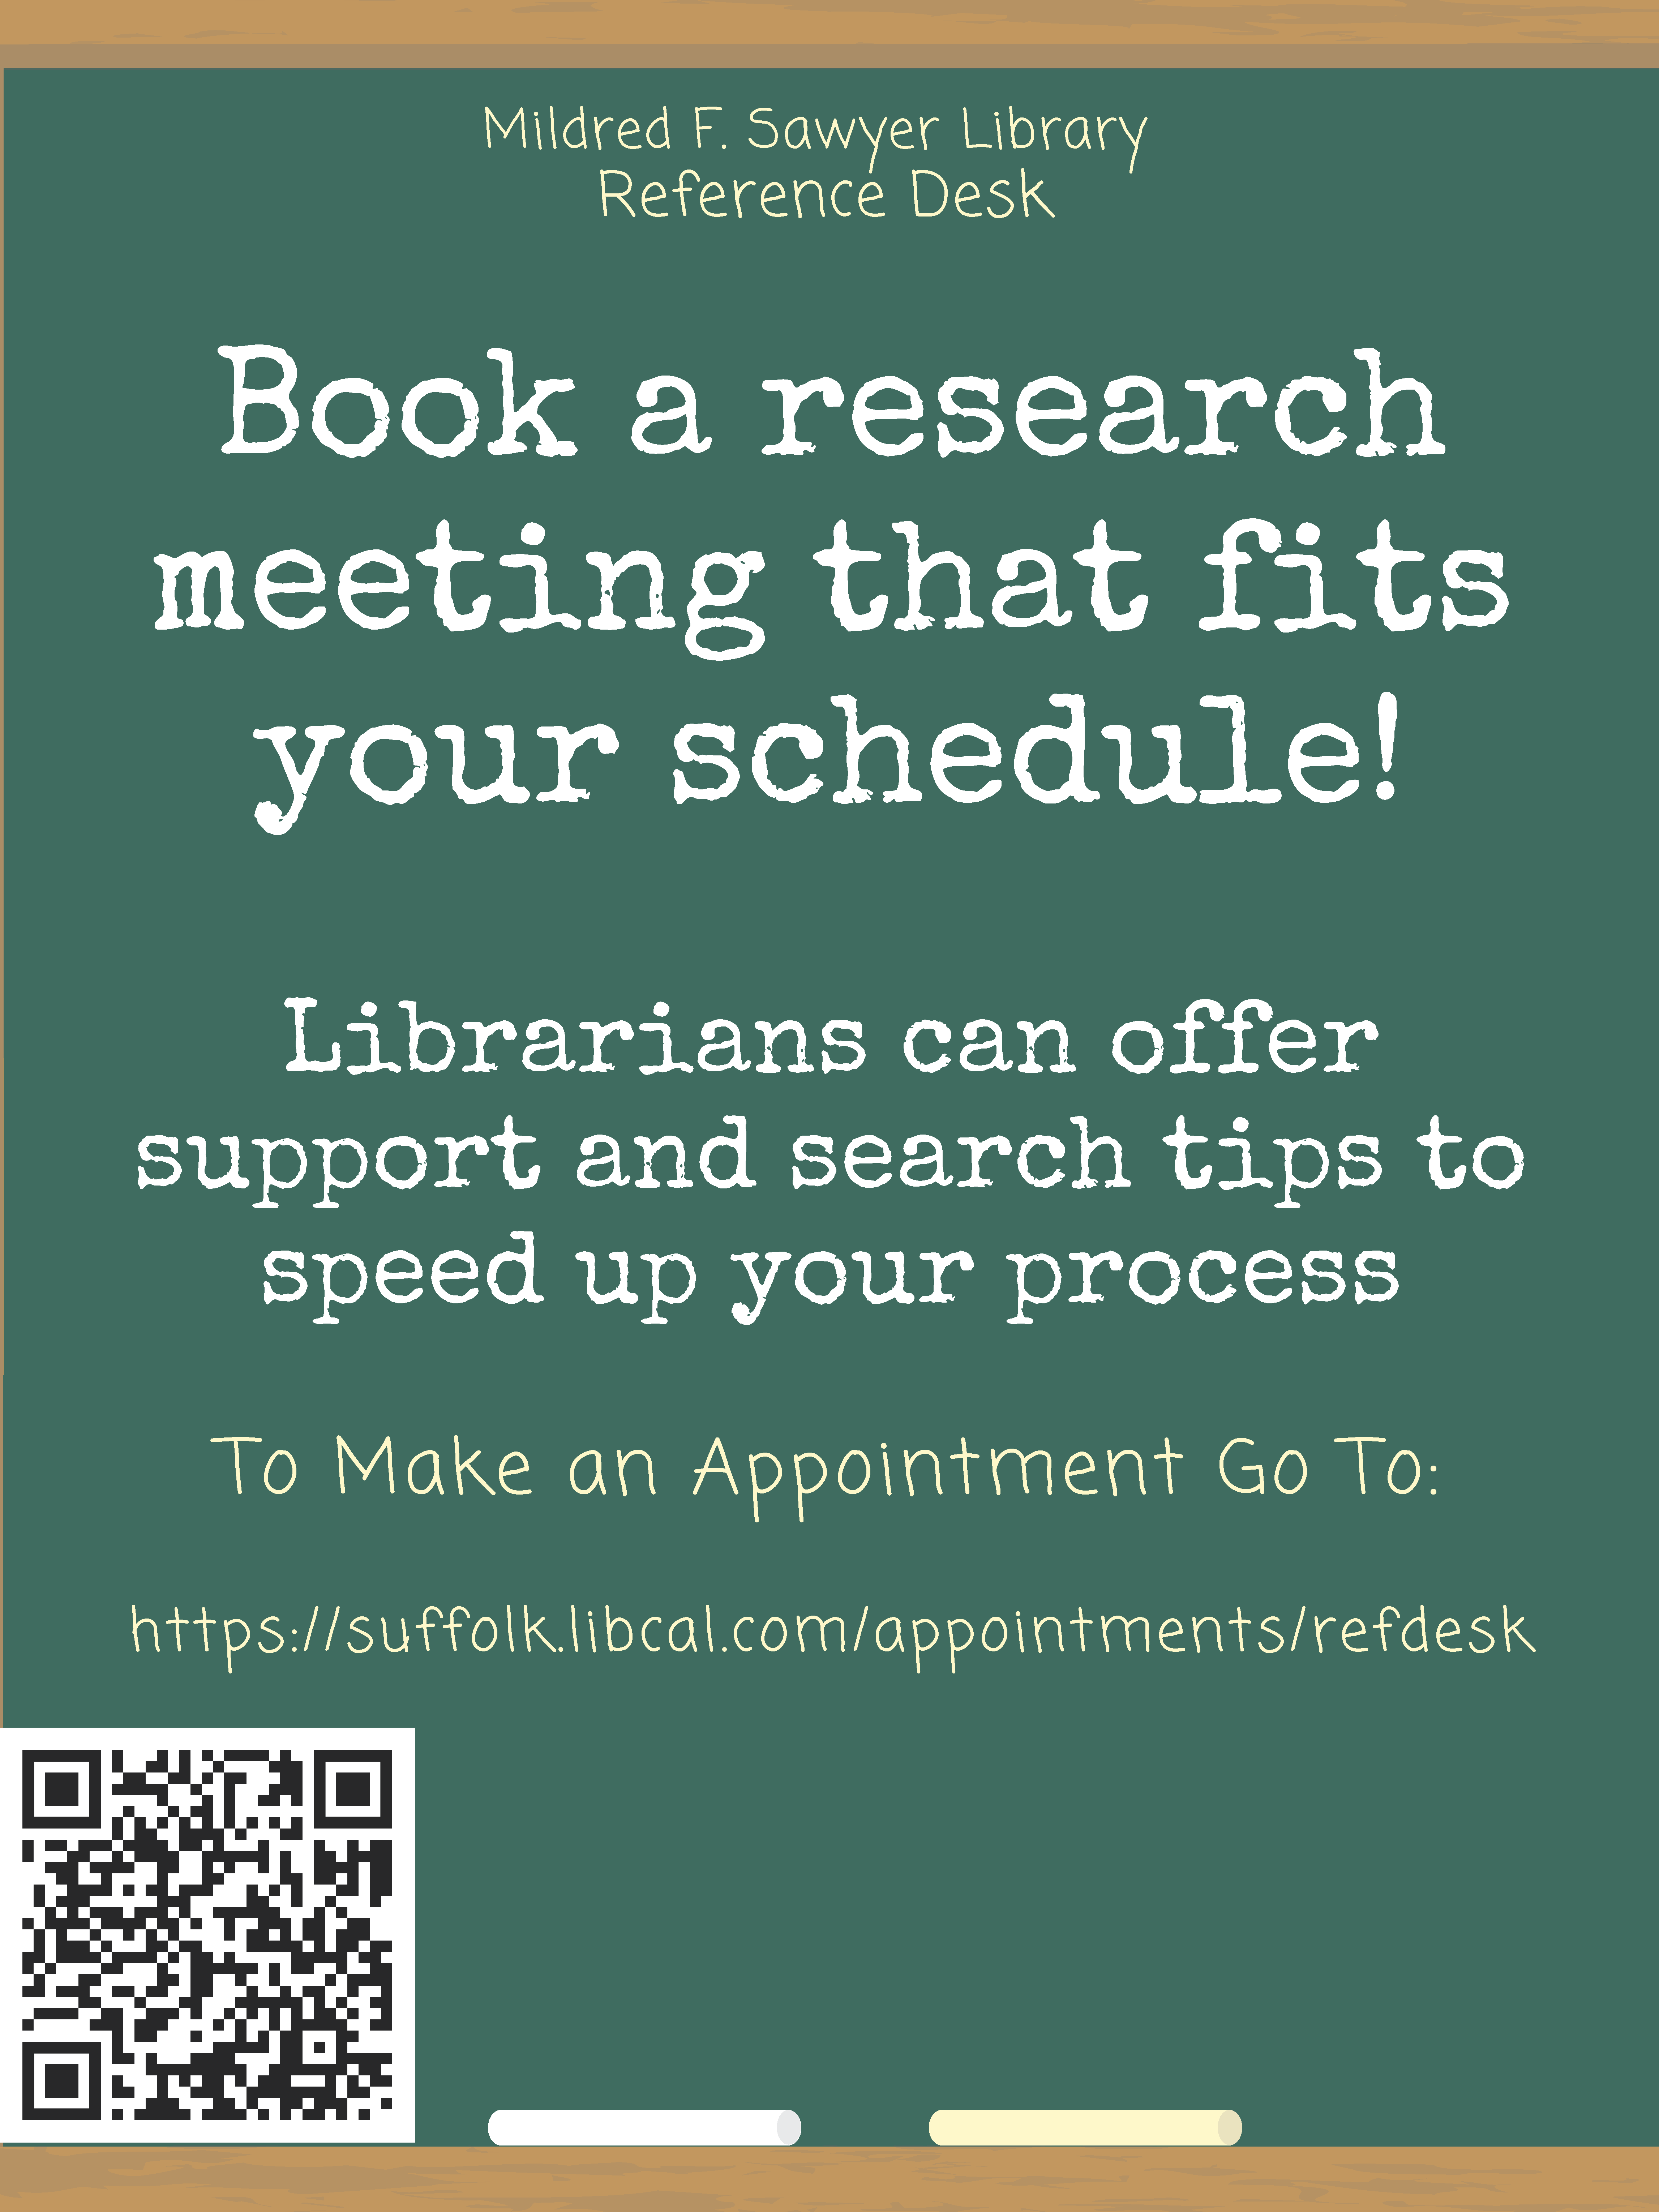 "This image advertises the Sawyer Library Reference department's ""Research Appointment"" service, and includes the booking link: https://suffolk.libcal.com/appointments/refdesk"